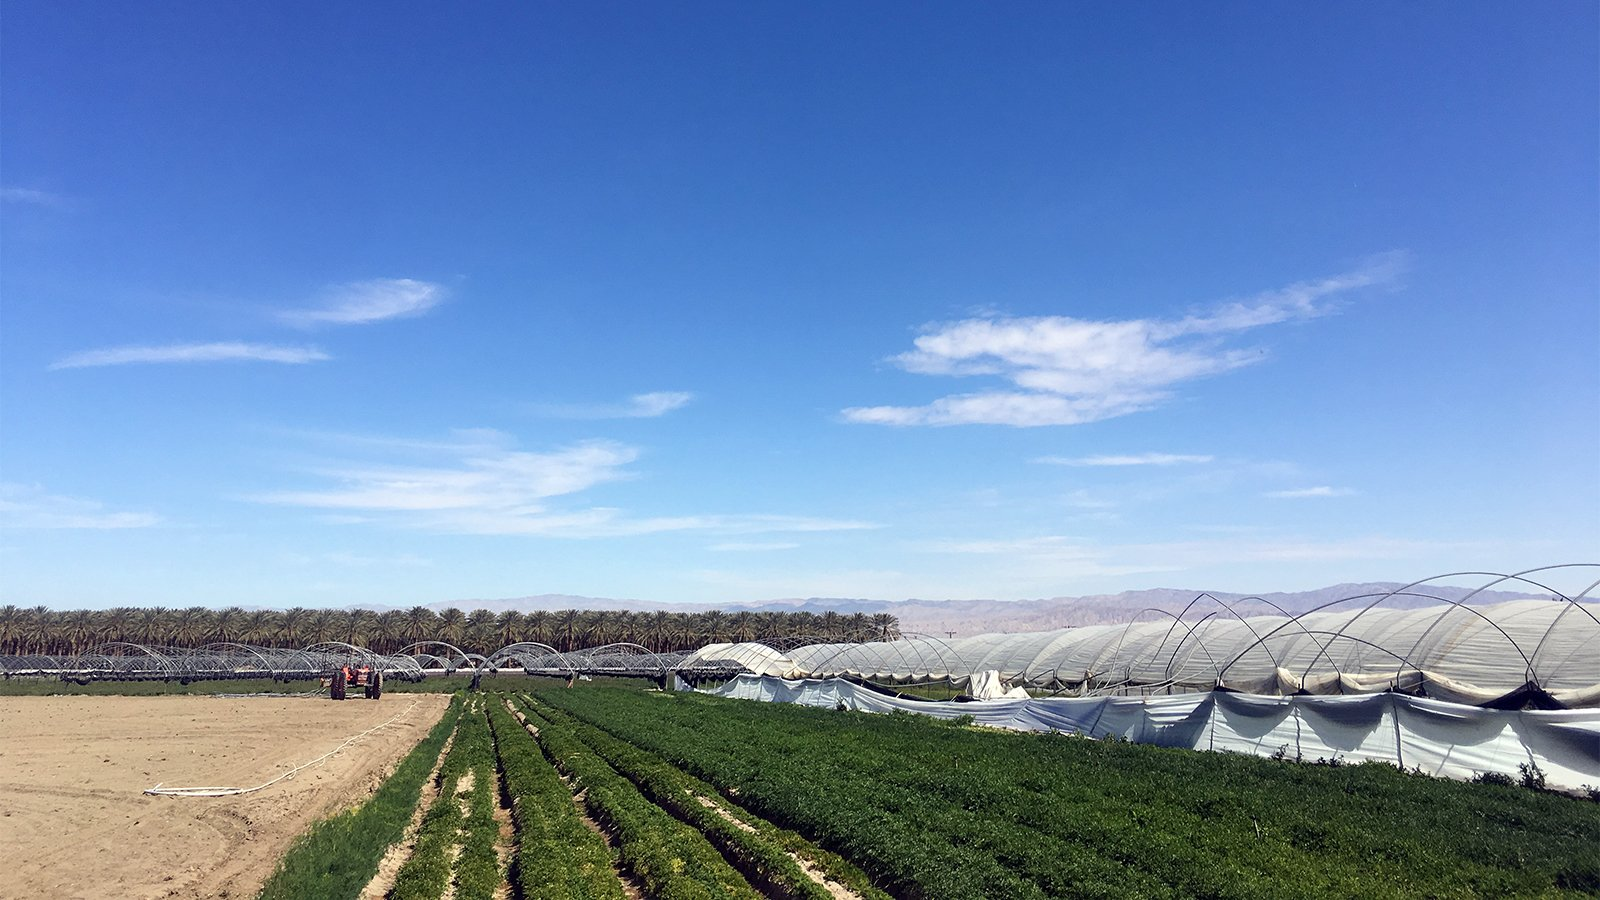 Farm fields in Thermal, California, in the Coachella Valley in Riverside County. RNS photo by Alejandra Molina